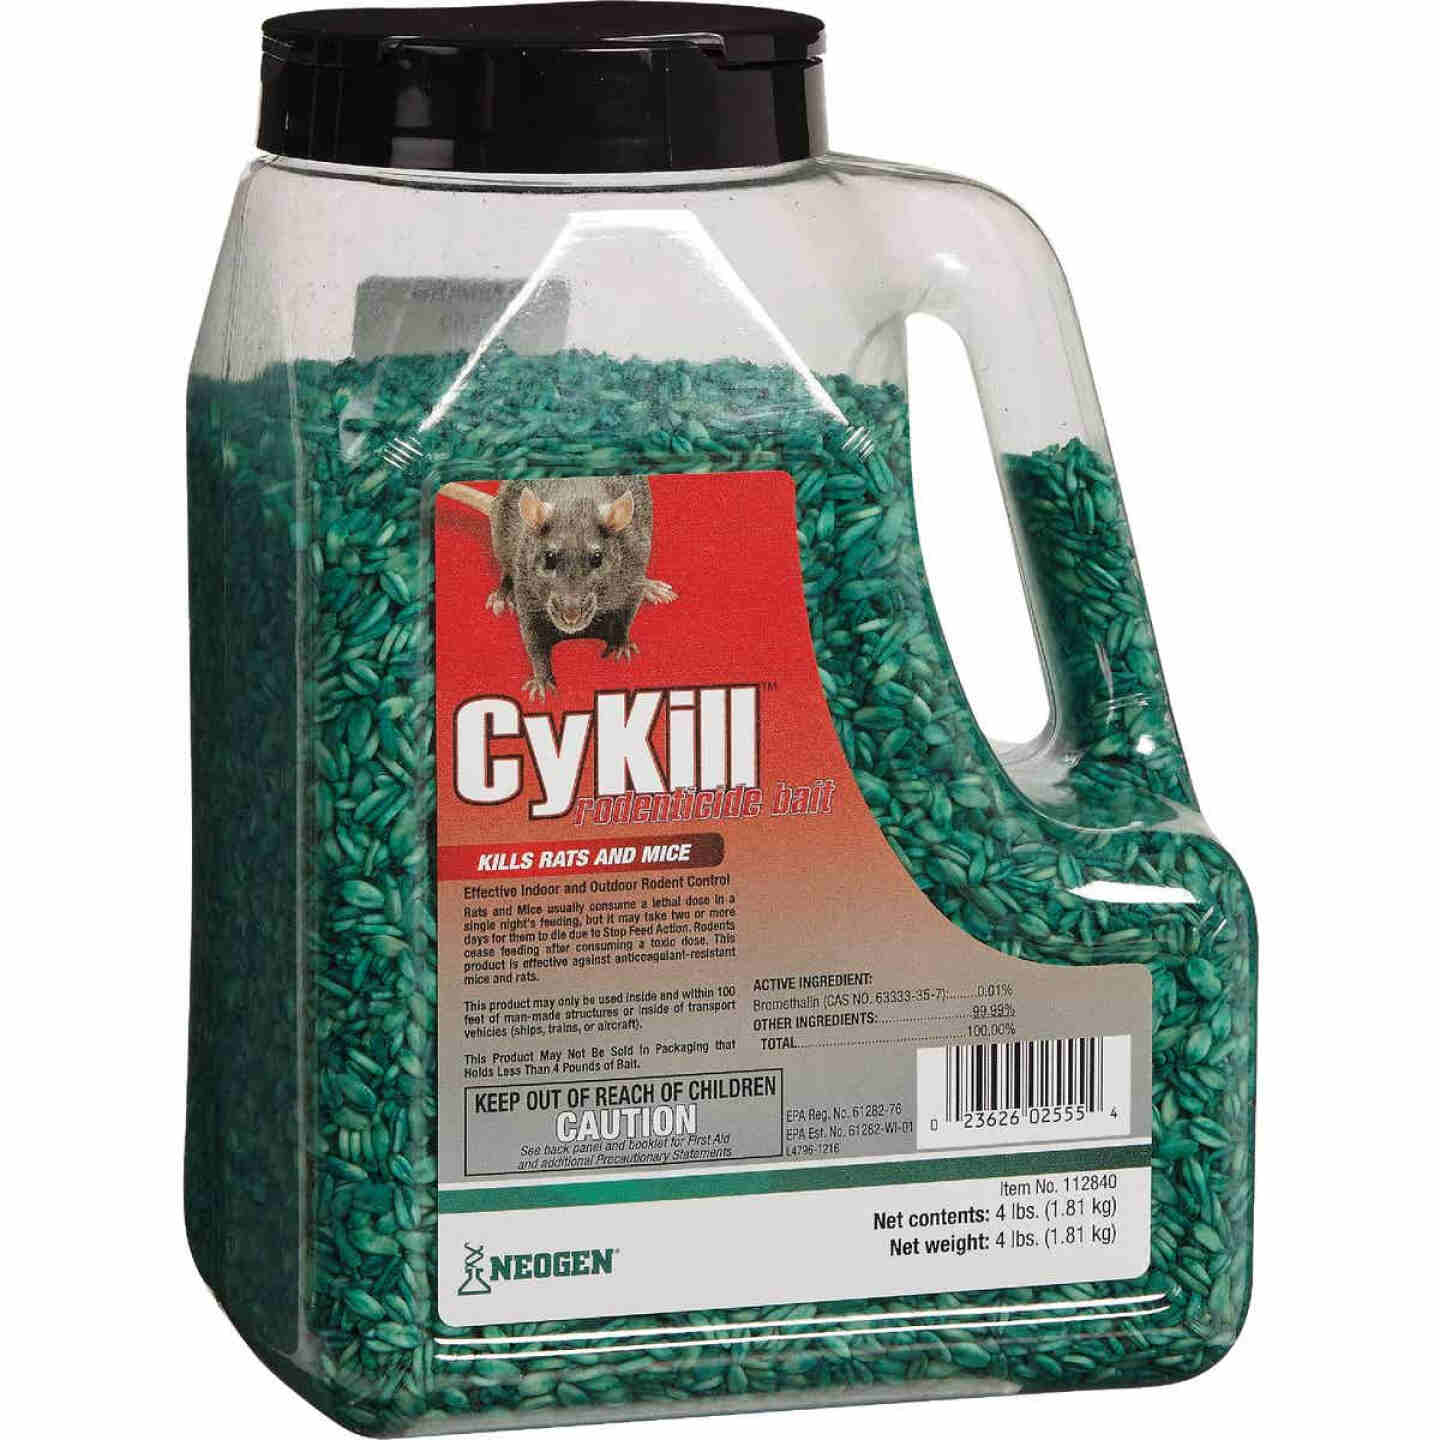 CyKill Seed Meal Bait Rat And Mouse Poison, 4 Lb. Image 1